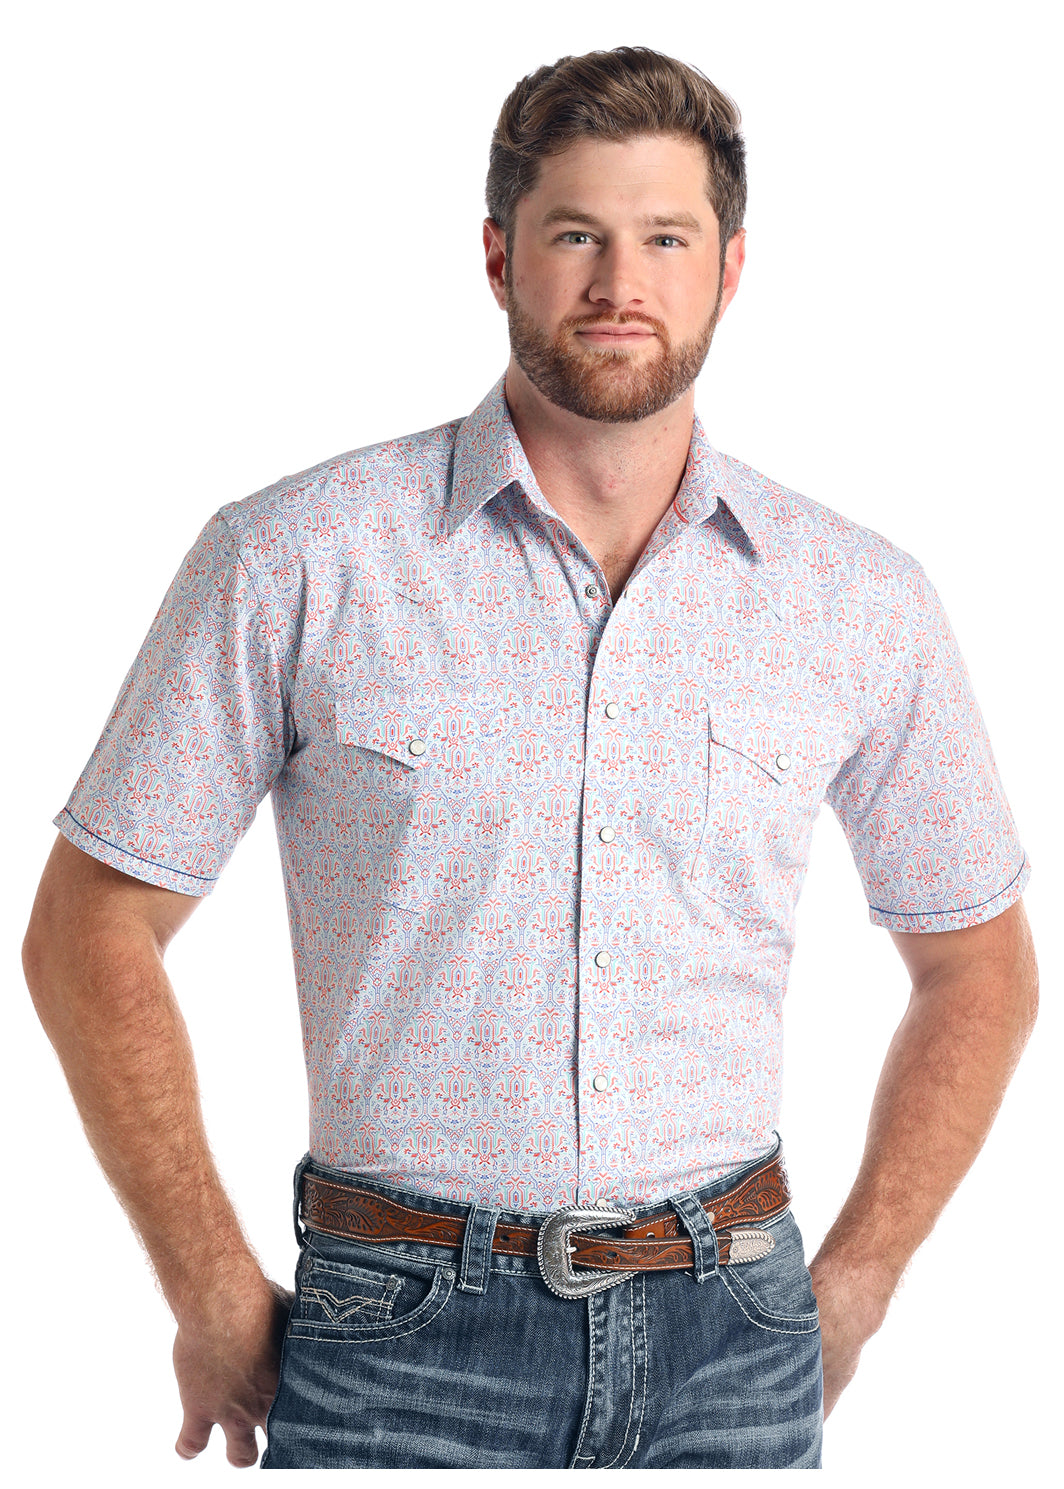 Panhandle Rough Stock Short Sleeve Men's Pearl Snap Shirt